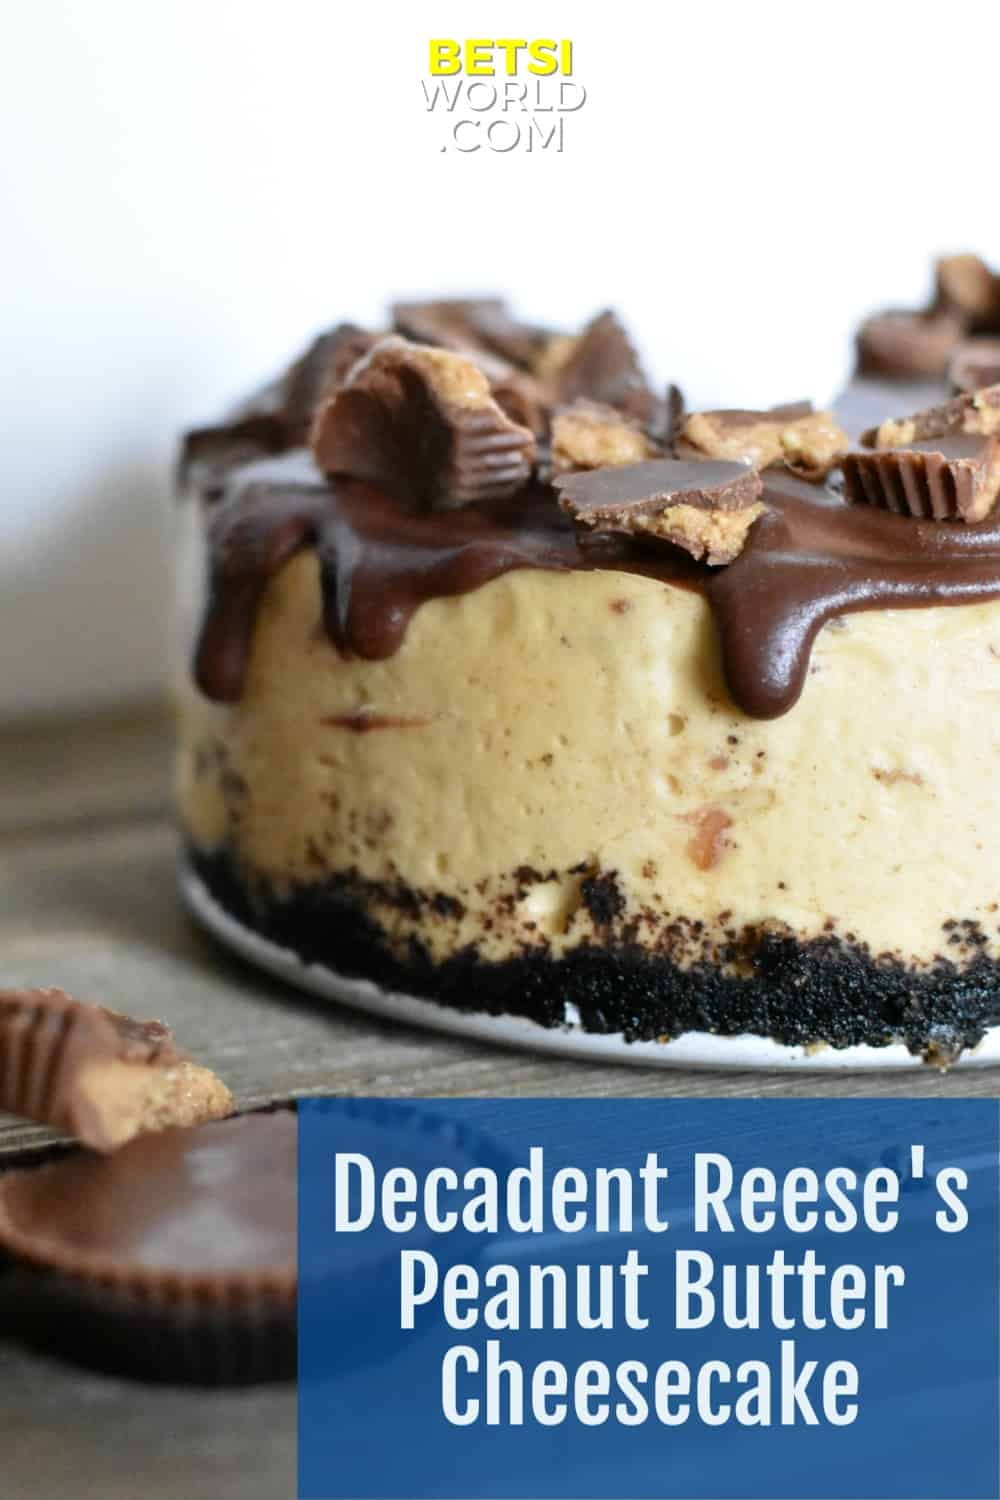 Decadent Reese's Peanut Butter Cheesecake Recipe